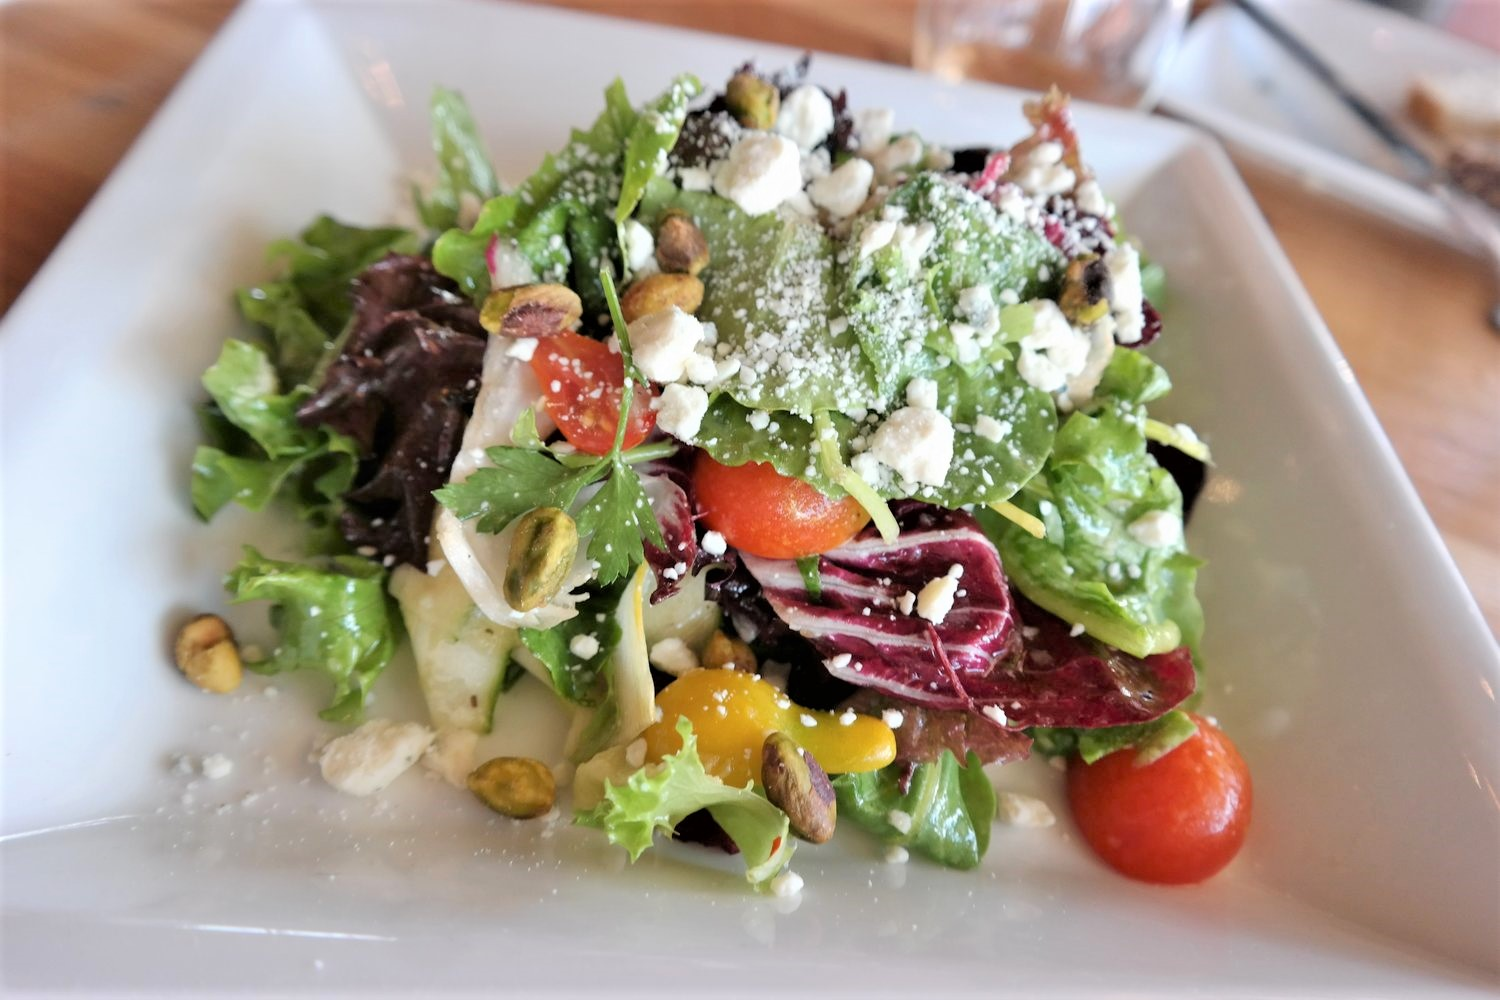 A July seasonal salad at Merkin Osteria